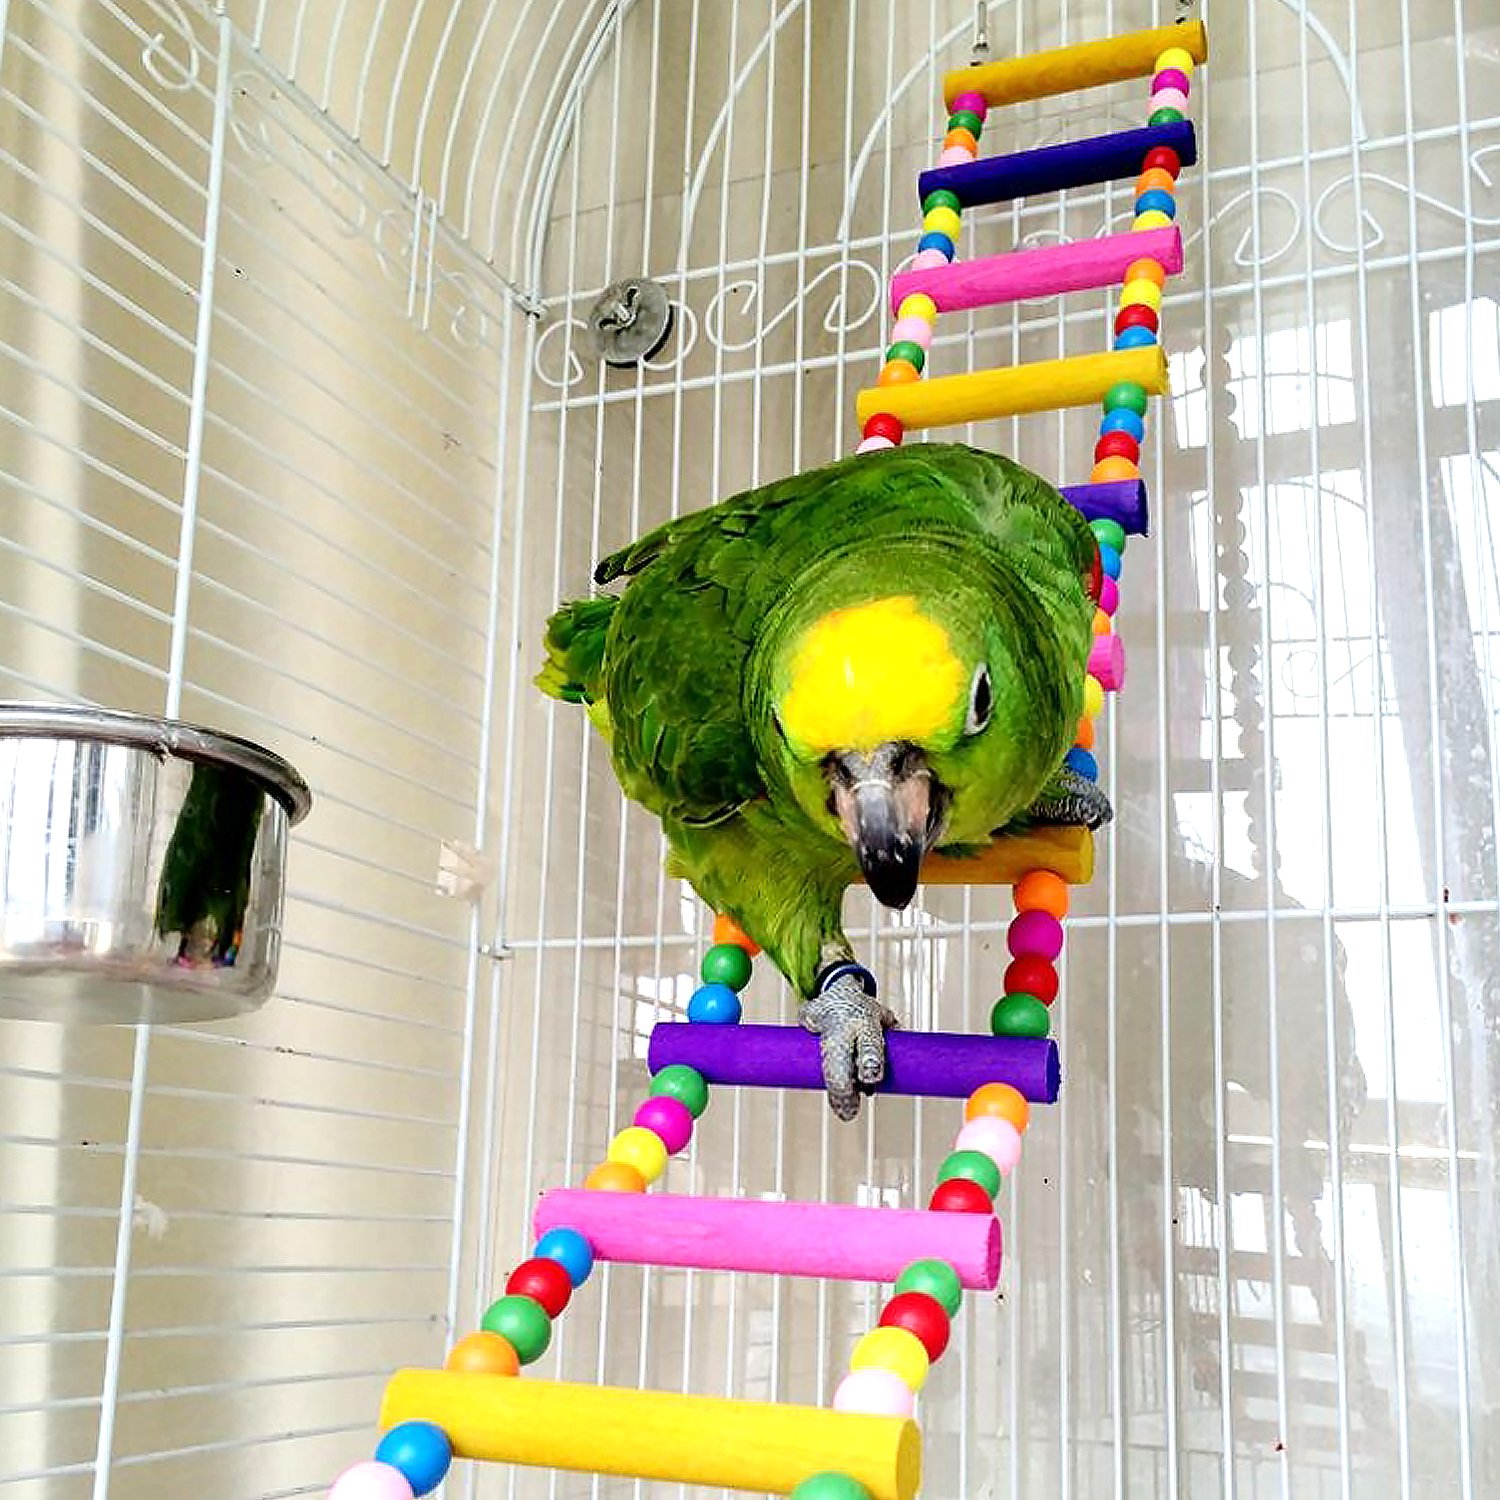 CocoGo Funny Swing Bird Toy Flexible Ladder, Colorful Wooden Rainbow Bridge Parrot's cage Shelf 31.5 Inch L and 4 Inch W by CoCogo